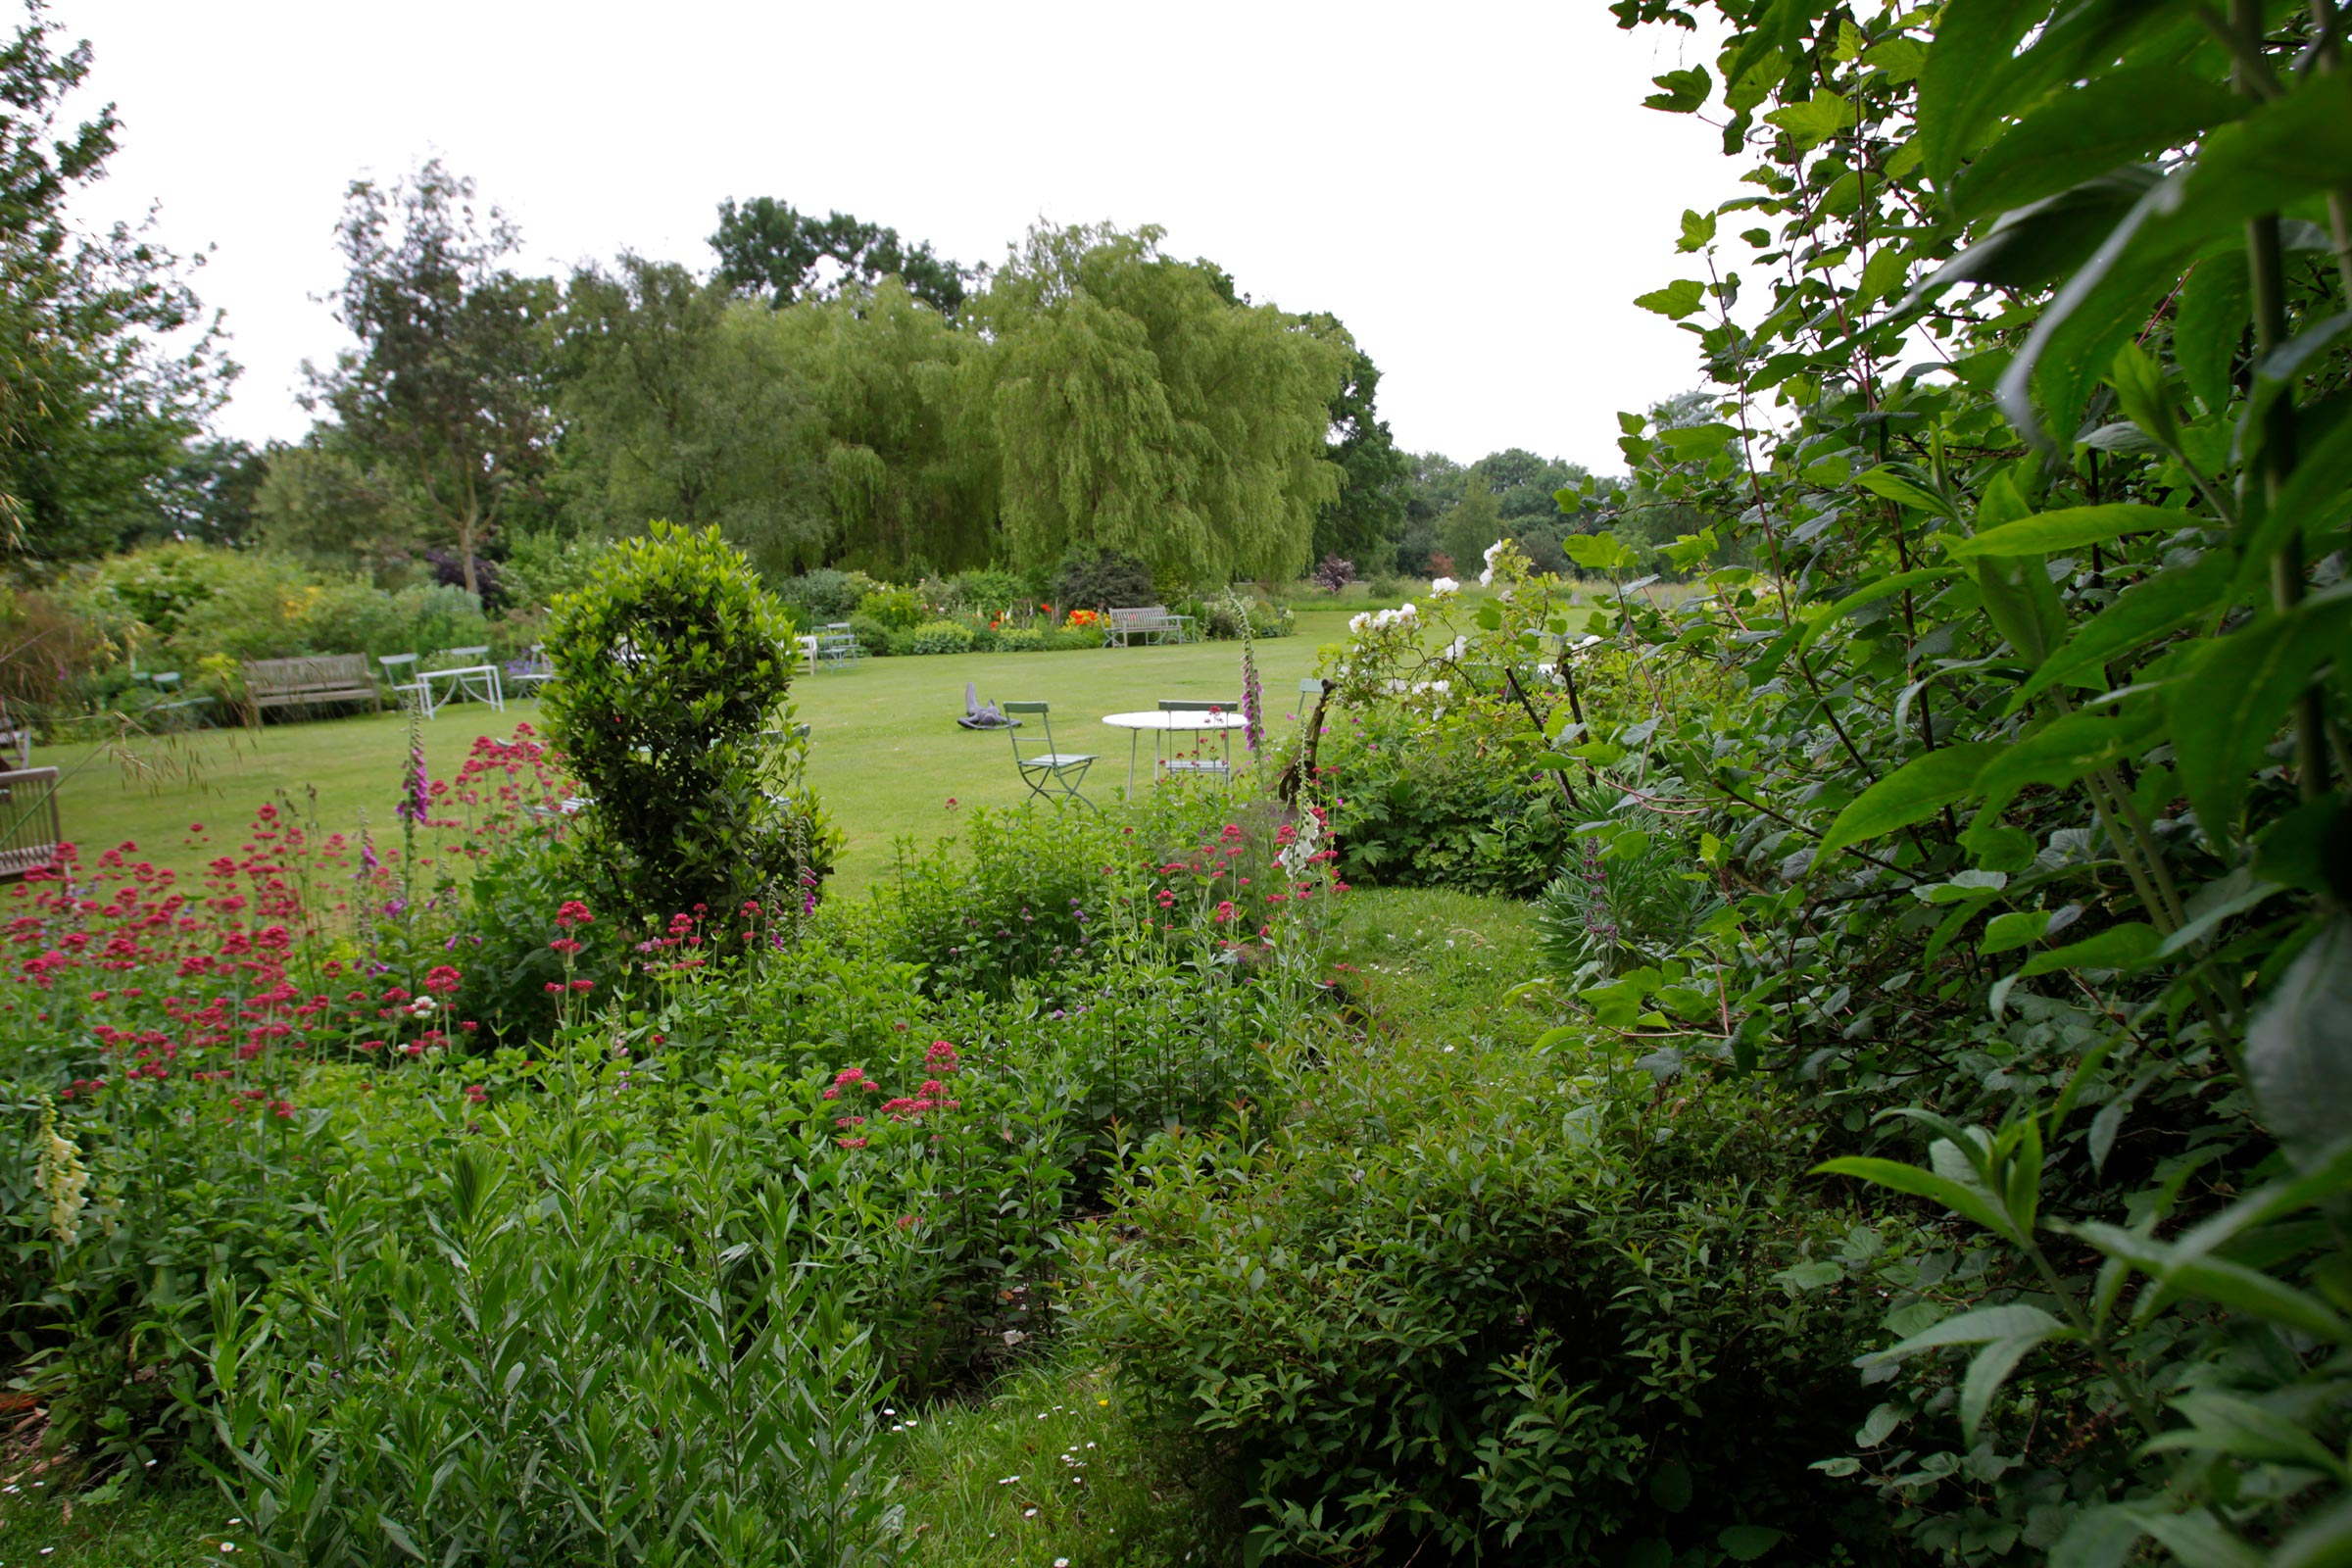 Garden, showing lawn and tables from the flower bed.